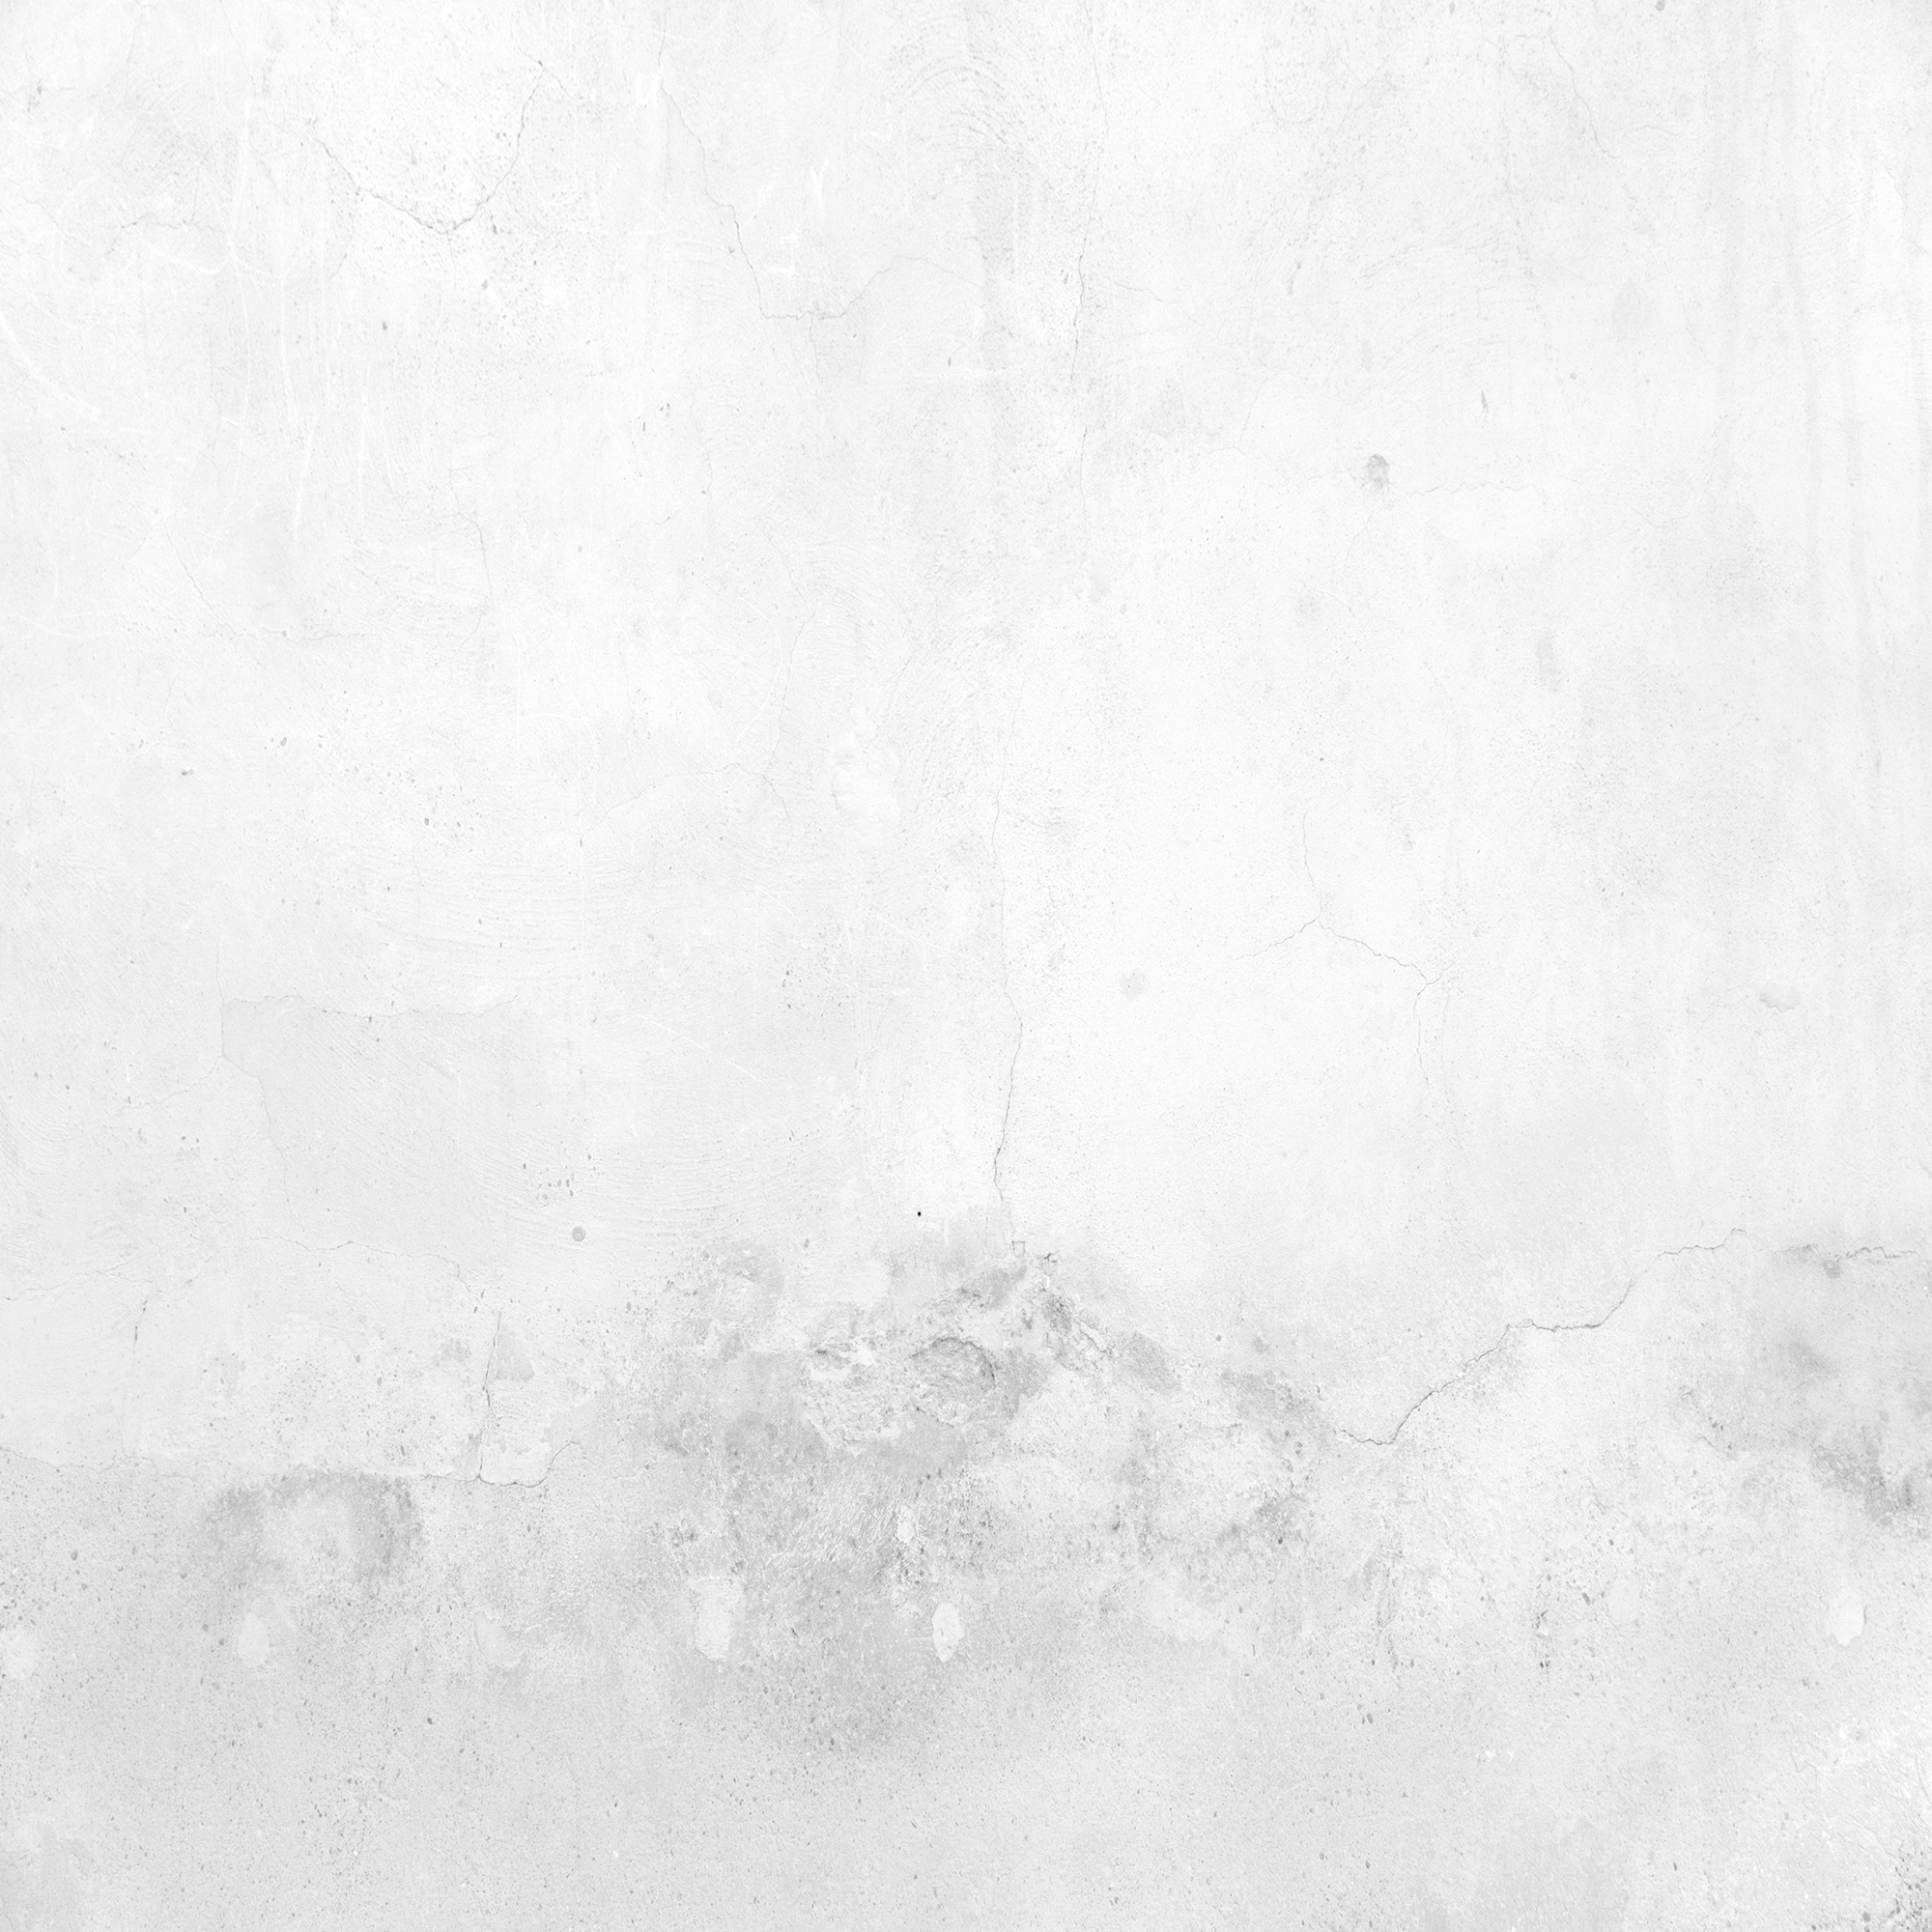 White wall with light gray splotches